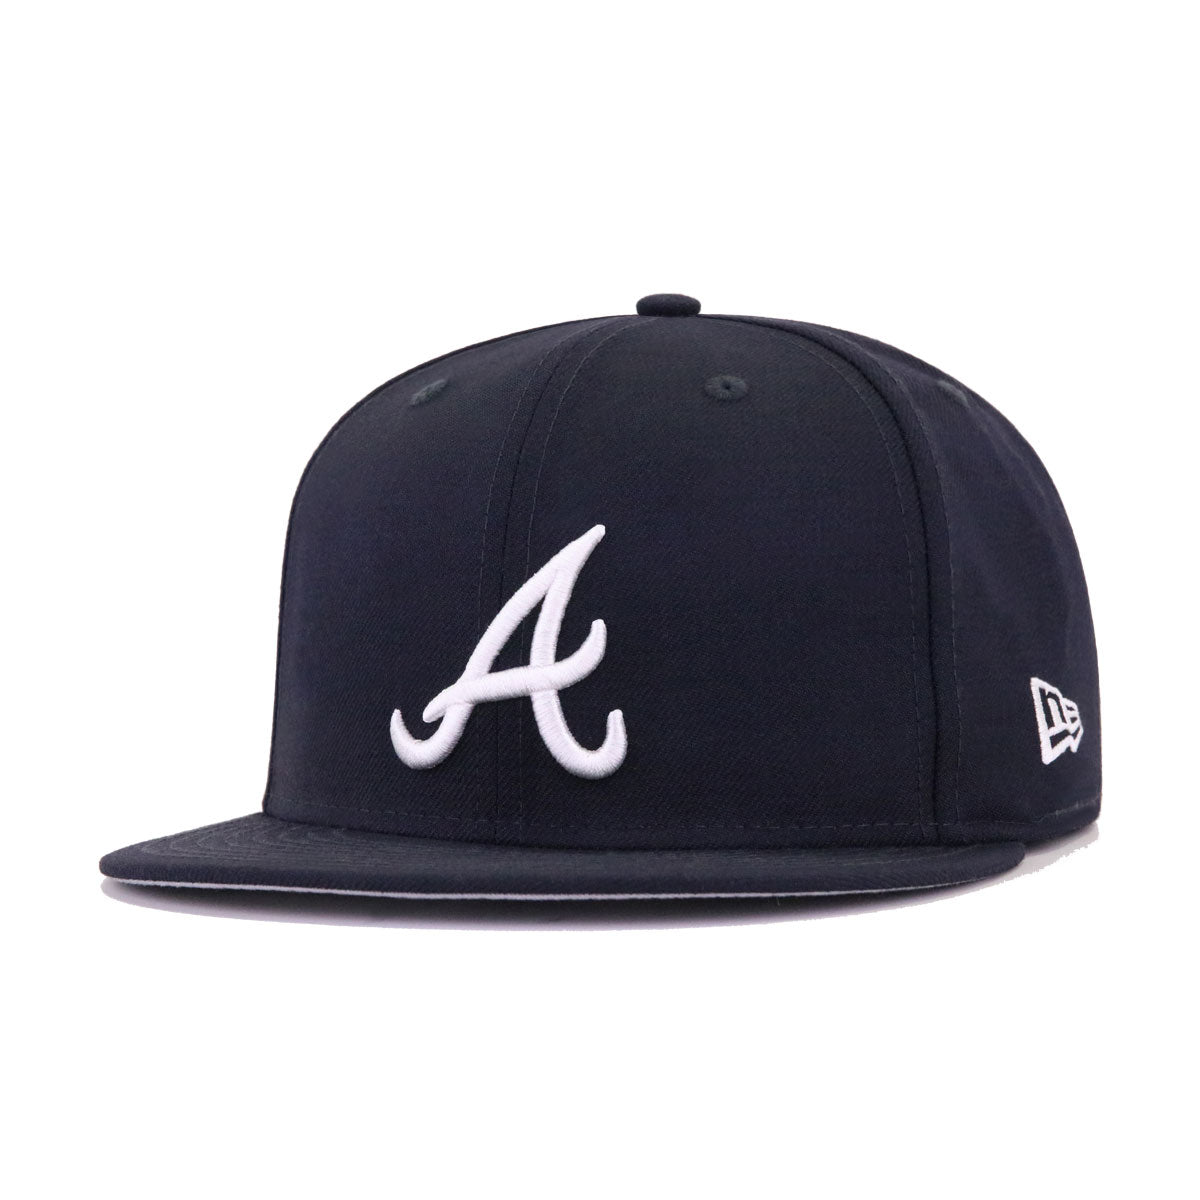 SWAROVSKI x New Era 3.0 Atlanta Braves Navy USA Flag New Era 59Fifty Fitted